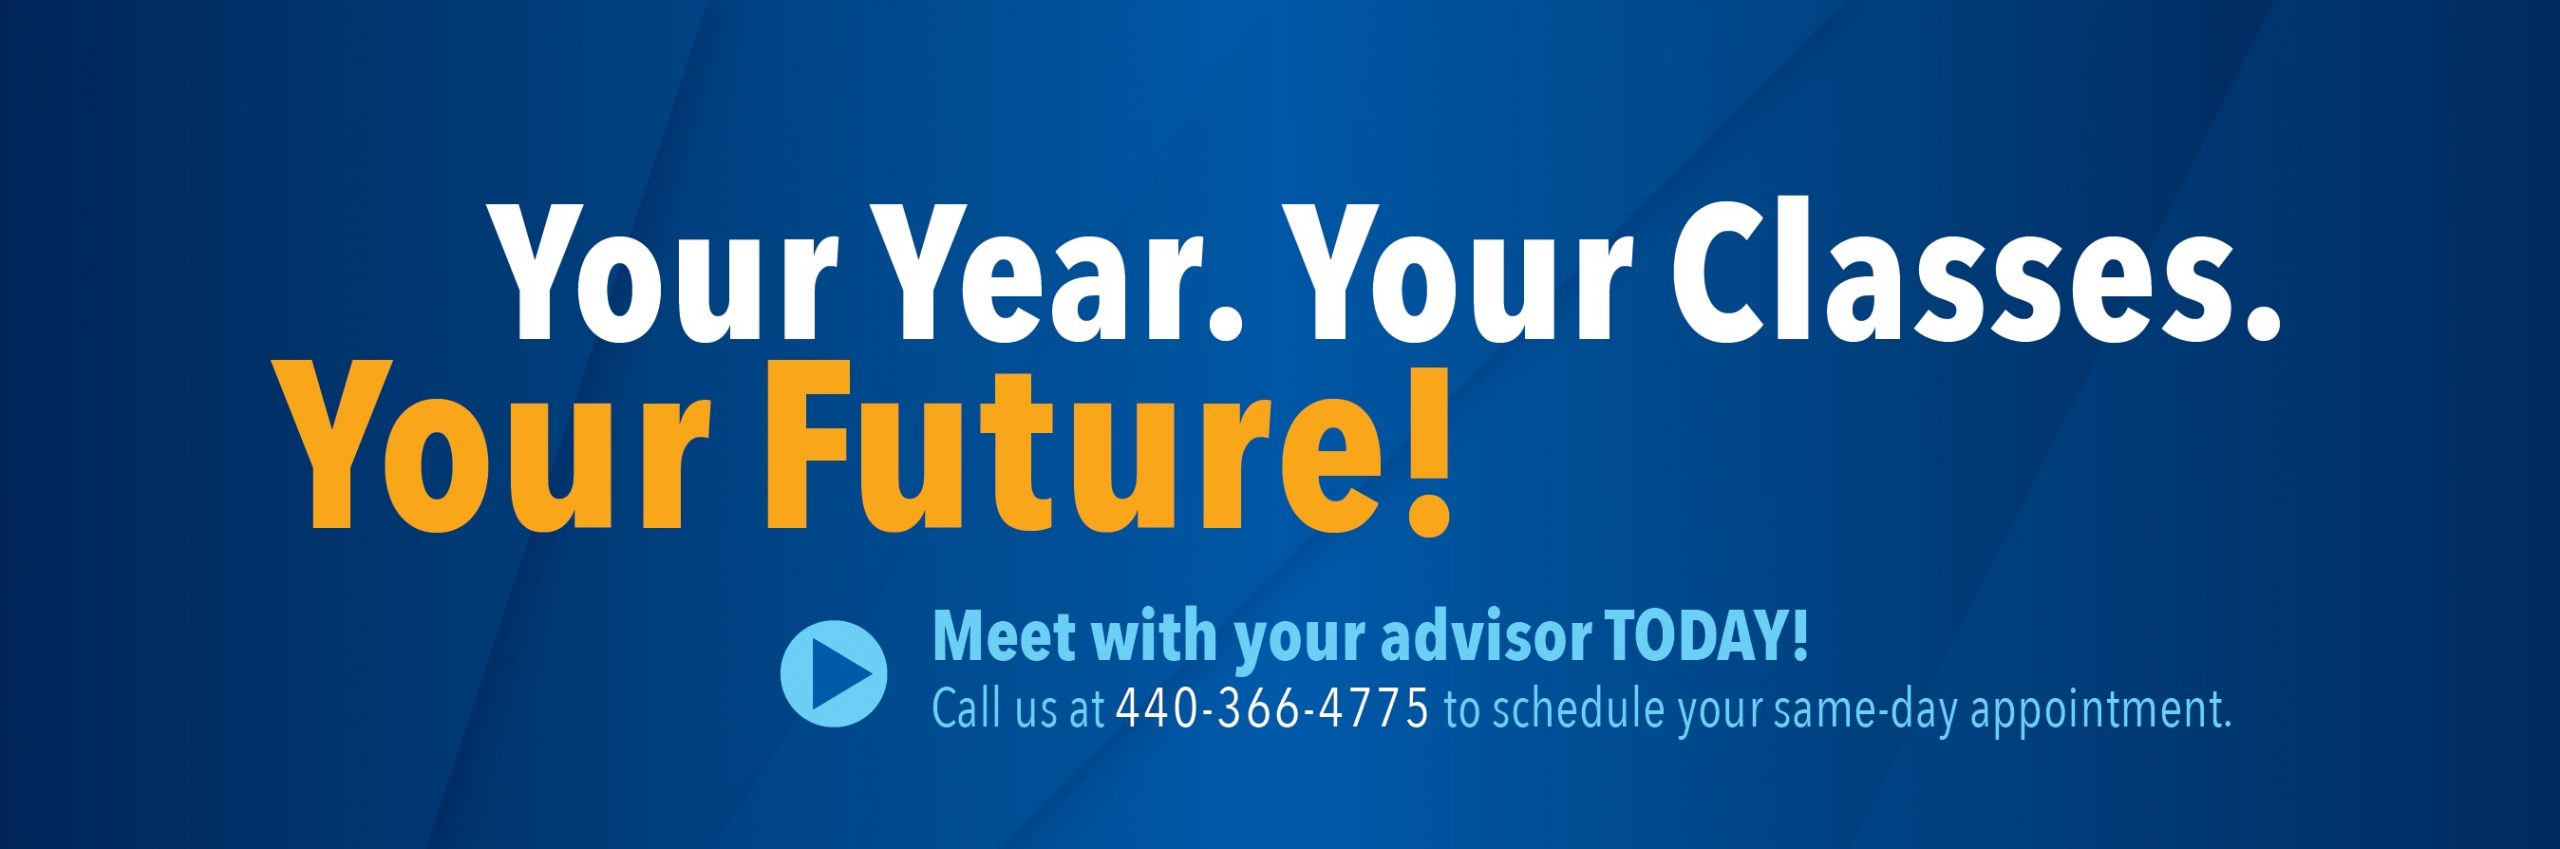 Your Year. Your Classes. Your Future. Meet with your advisor today! Call us at 440-366-4775 to schedule your same-day appointment.